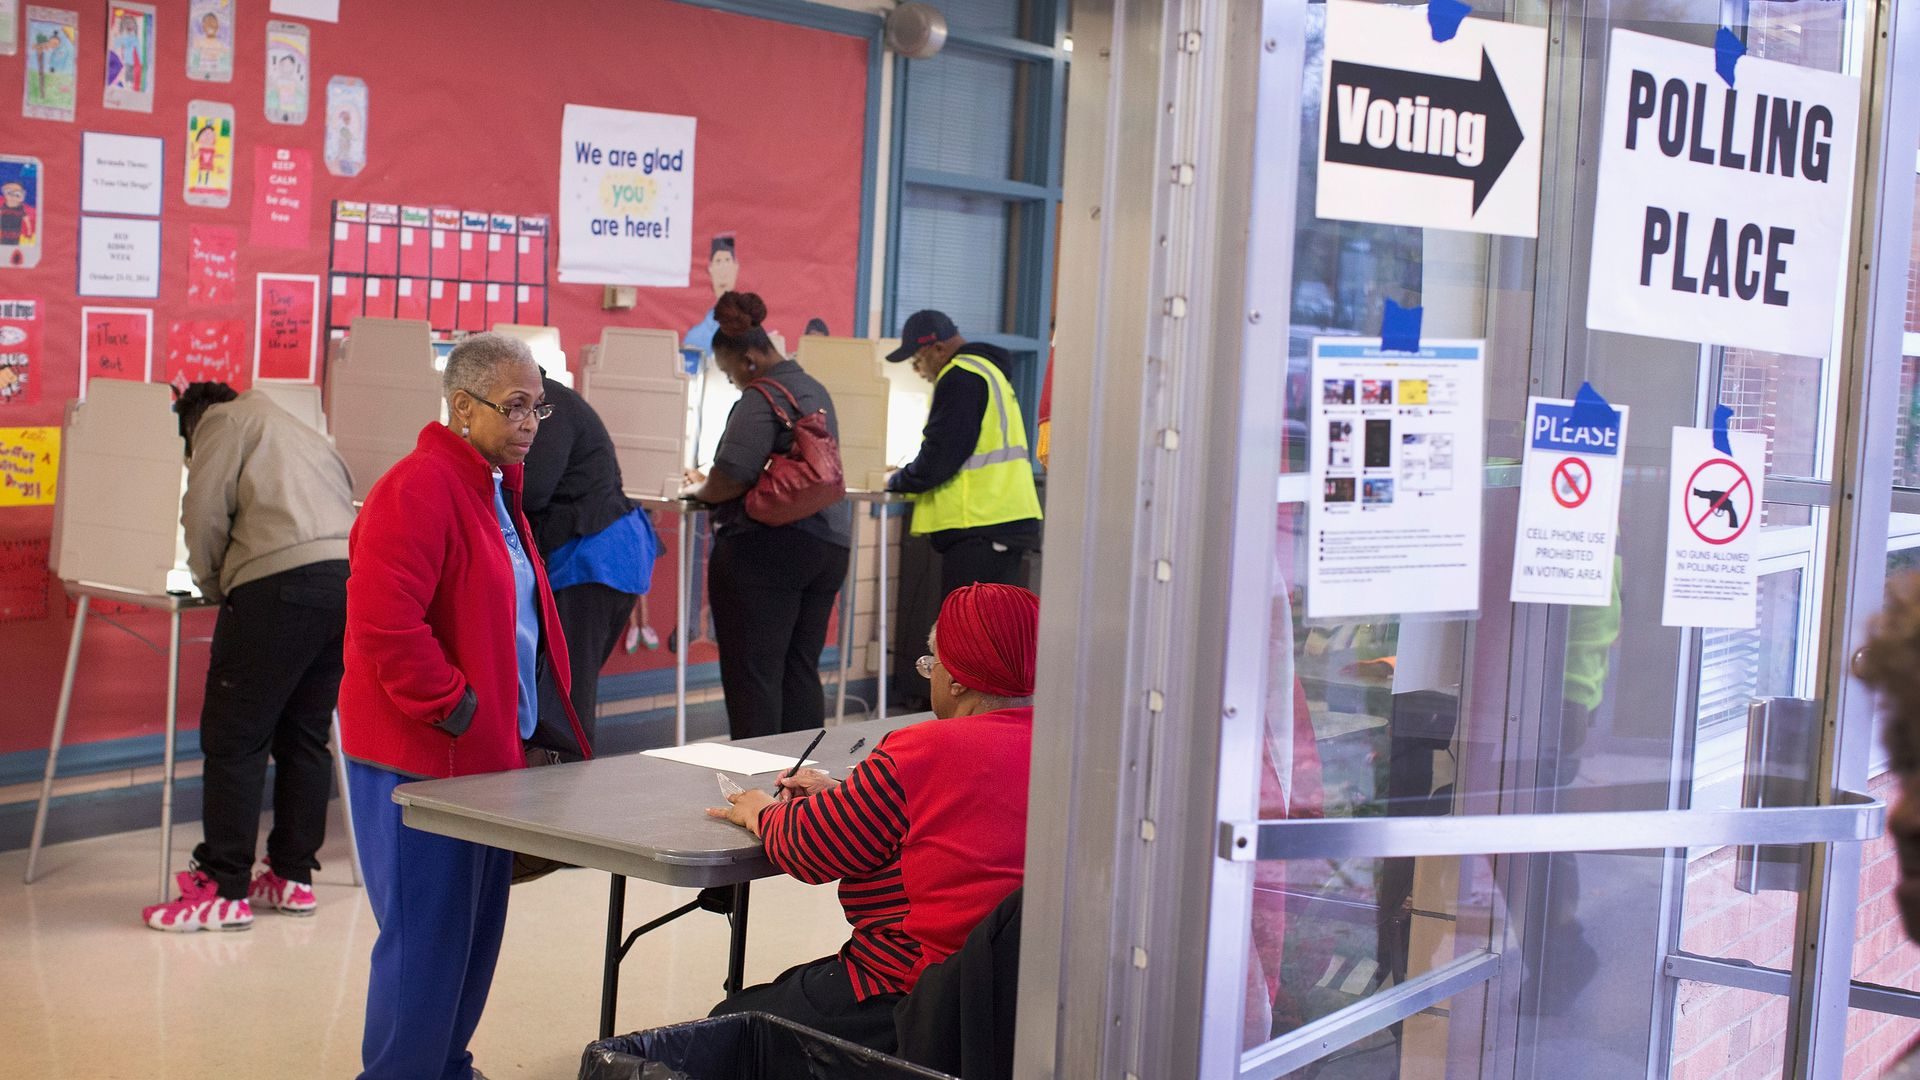 Residents cast their votes at a polling place